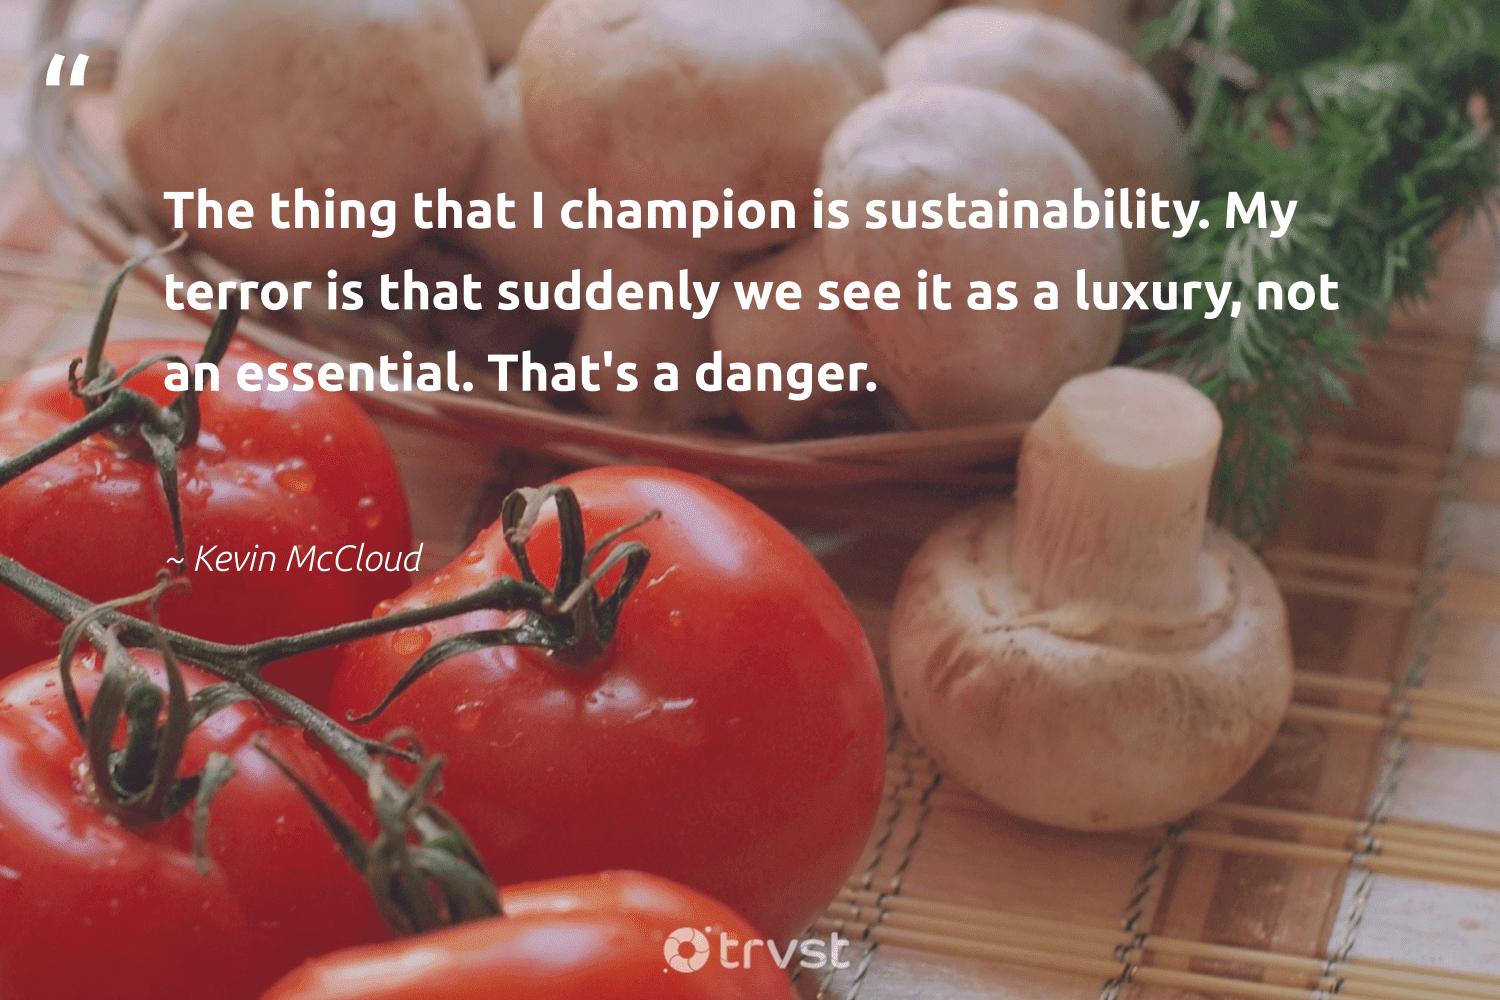 """""""The thing that I champion is sustainability. My terror is that suddenly we see it as a luxury, not an essential. That's a danger.""""  - Kevin McCloud #trvst #quotes #sustainability #sustainableliving #green #fashion #bethechange #sustainable #greenliving #gogreen #beinspired #ecofriendly"""